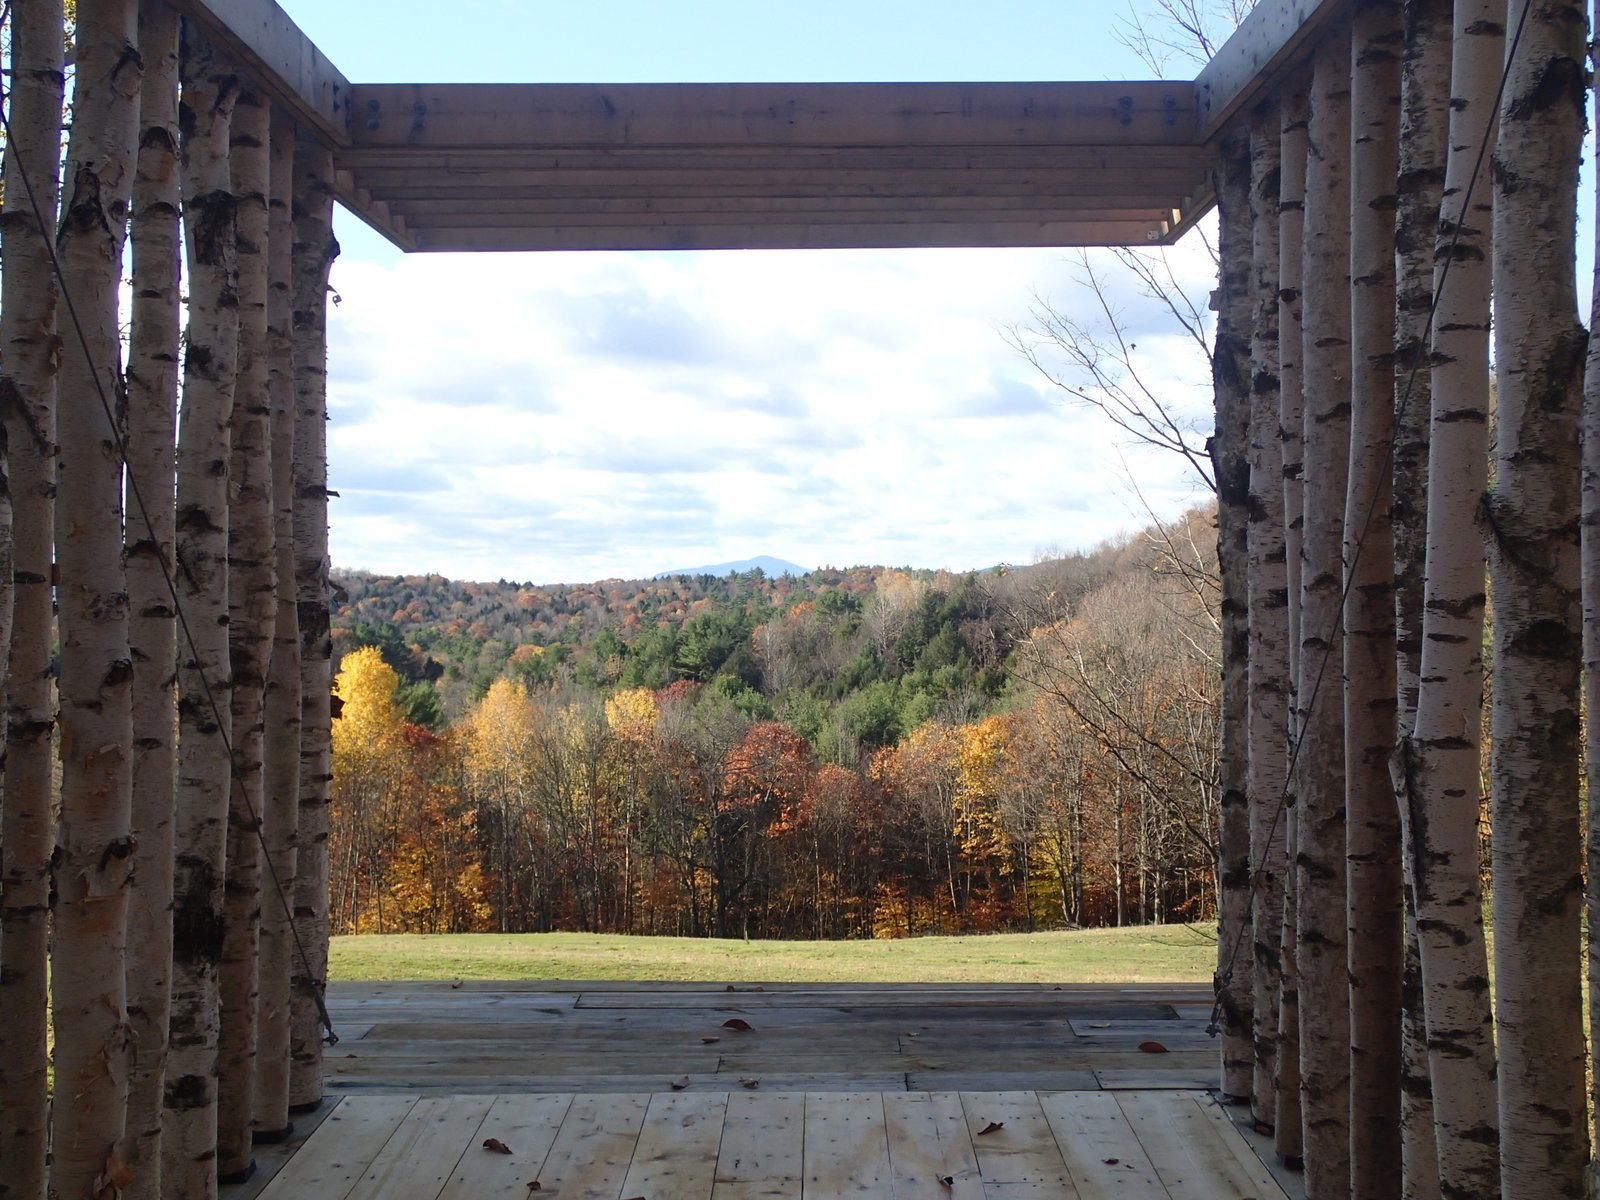 The pavilion frames a view of the peak of Mt. Ascutney, 25 miles in the distance. Photo courtesy of Moskow Linn Architects.  Photo 7 of 7 in Aspiring Architects Build a Pavilion in the Vermont Forest